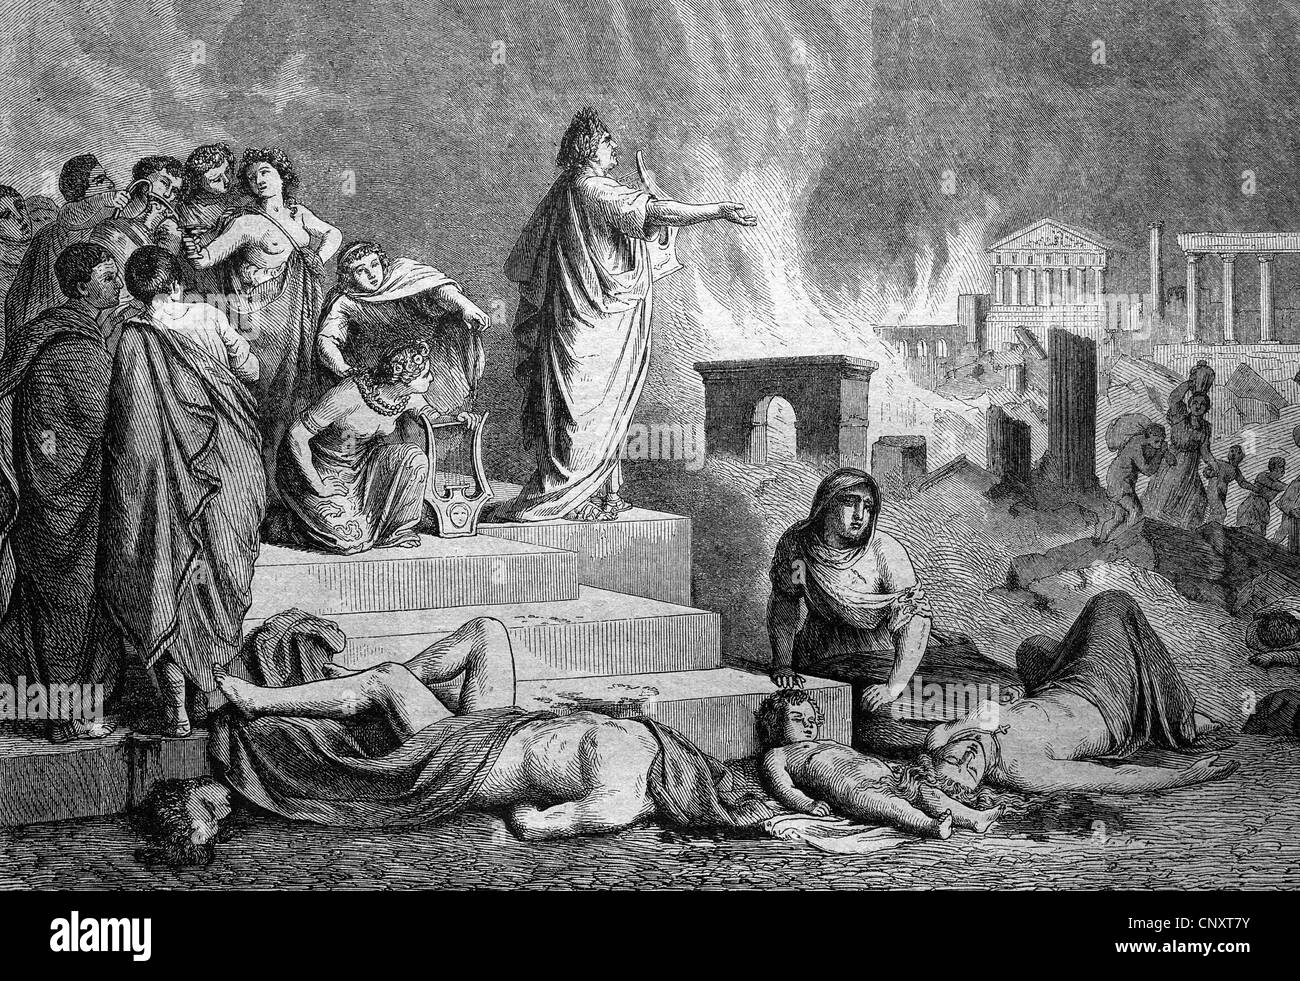 Nero during the burning of Rome, Italy, historical engraving, 1888 - Stock Image